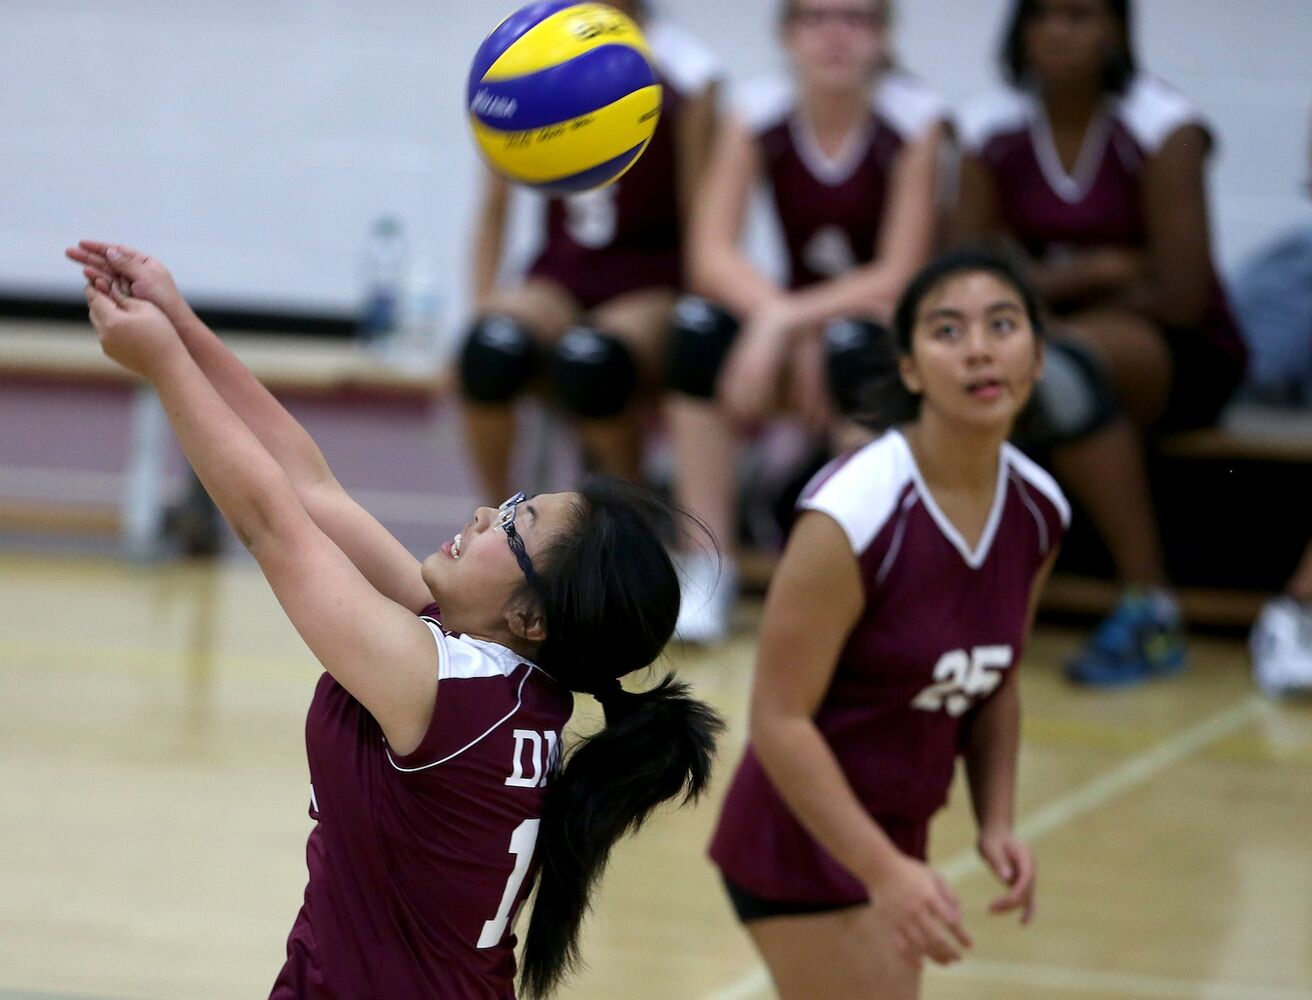 DMCI Maroons' Jayvee Altasin (right) watches as teammate Jacquelynn Joseph bumps the ball. (TREVOR HAGAN / WINNIPEG FREE PRESS)